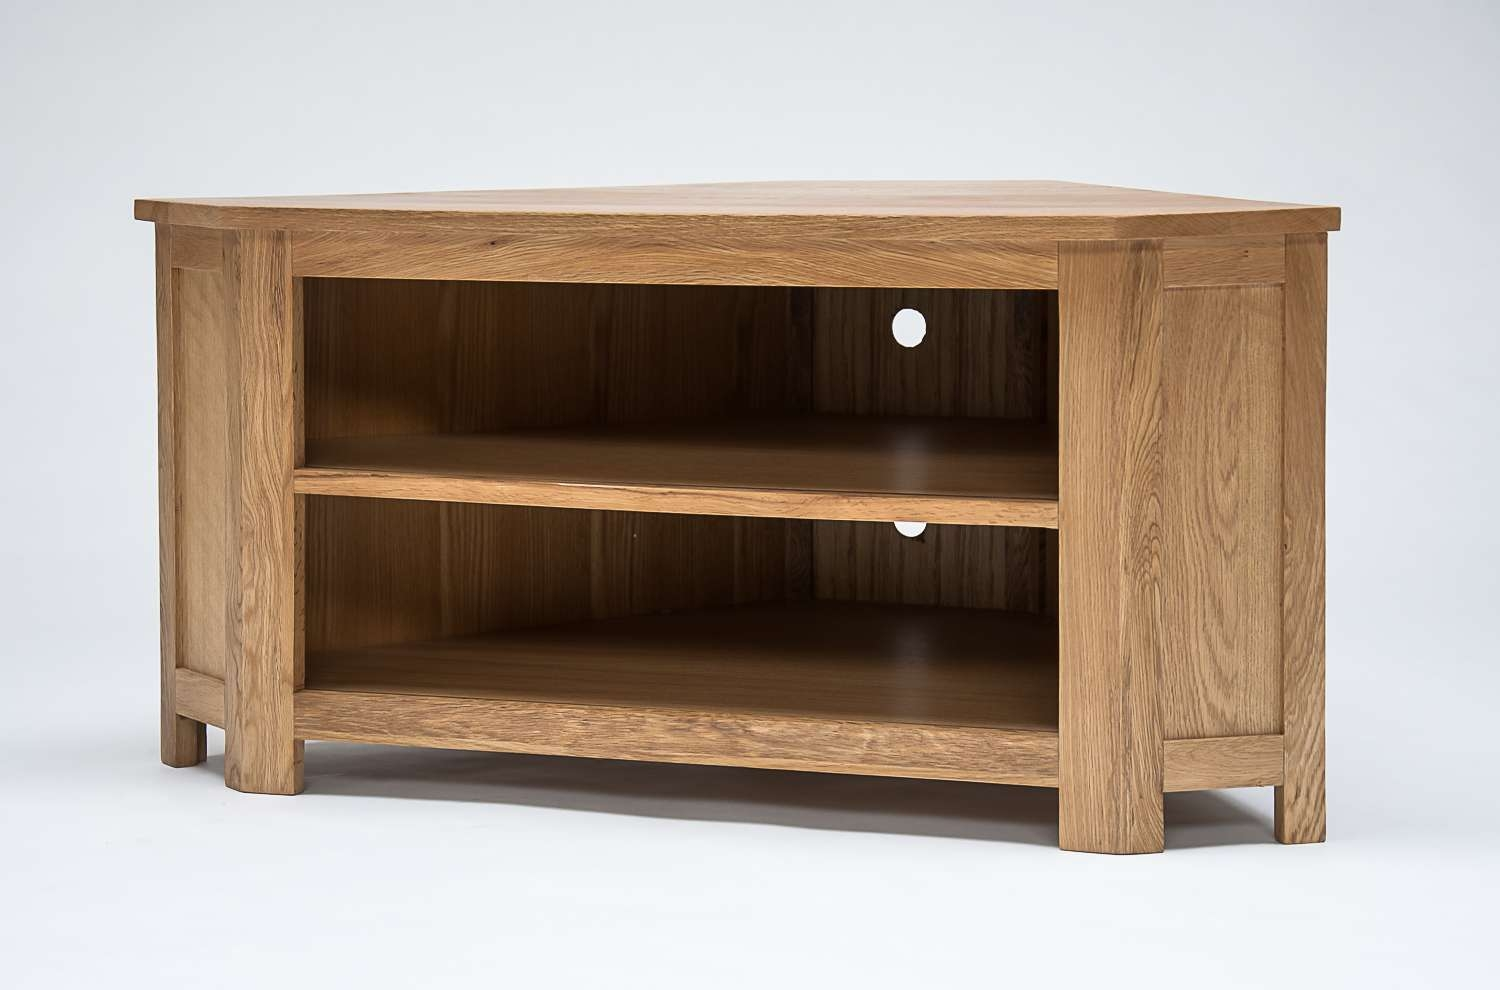 Lansdown Oak Low Corner Tv Cabinet | Oak Furniture Solutions In Light Oak Corner Tv Cabinets (View 6 of 20)